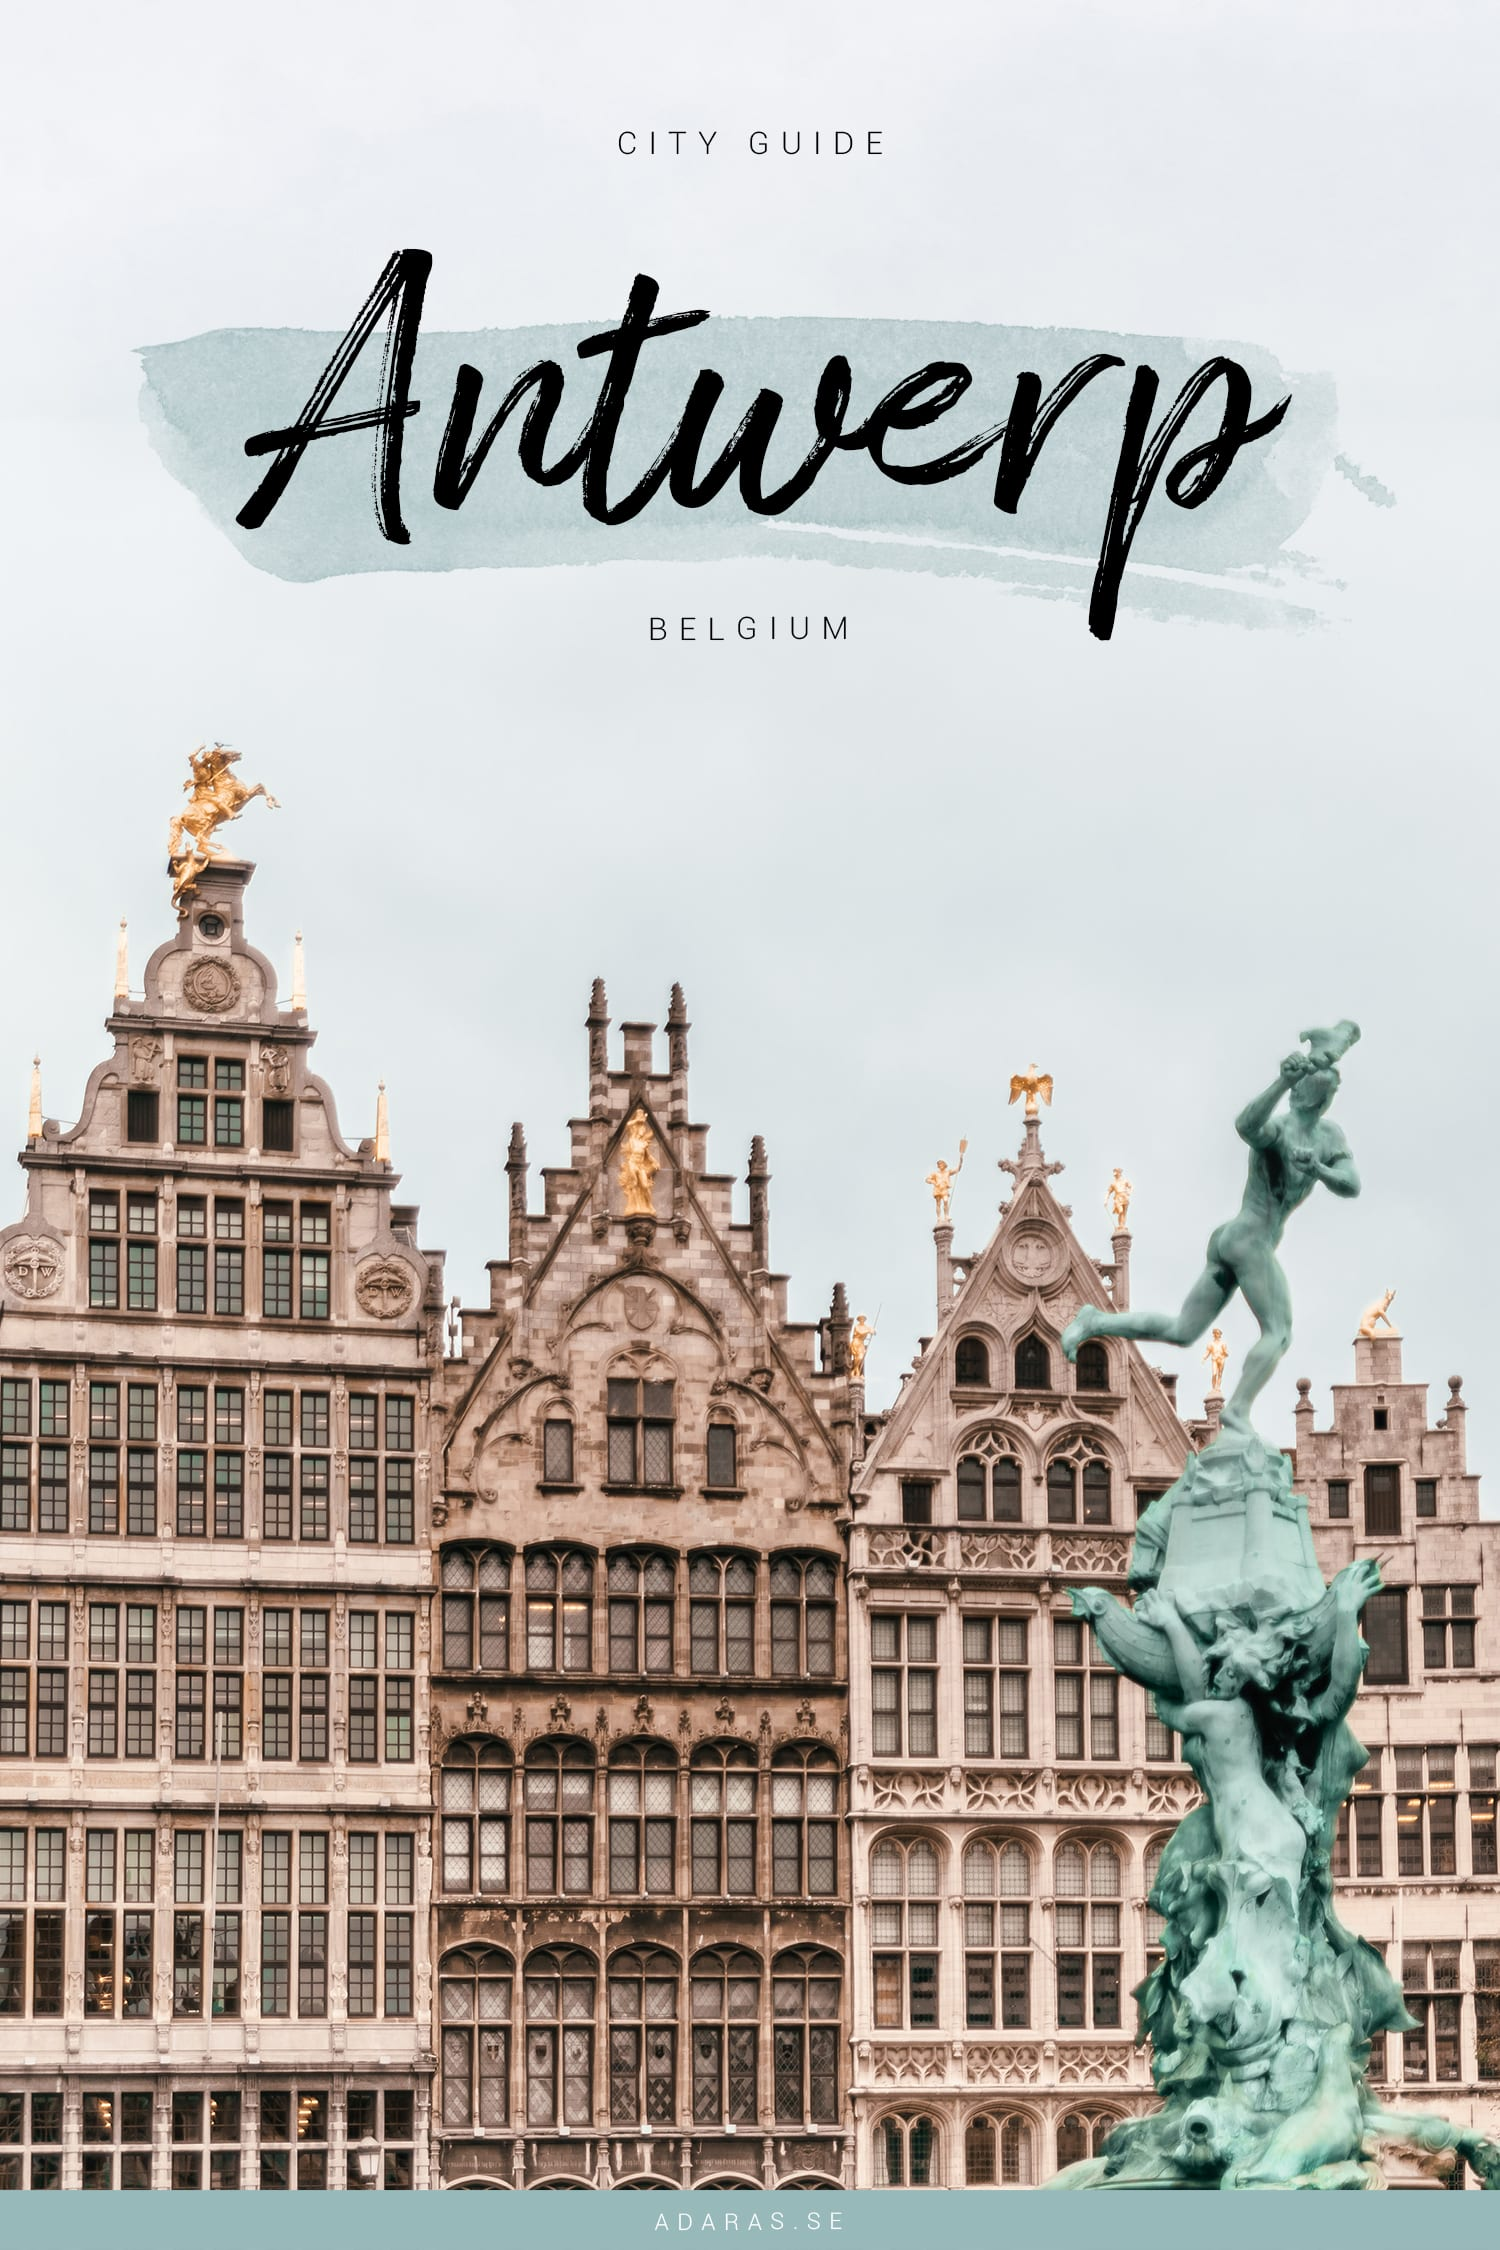 Best Things to Do in Antwerp, Belgium | City Guide